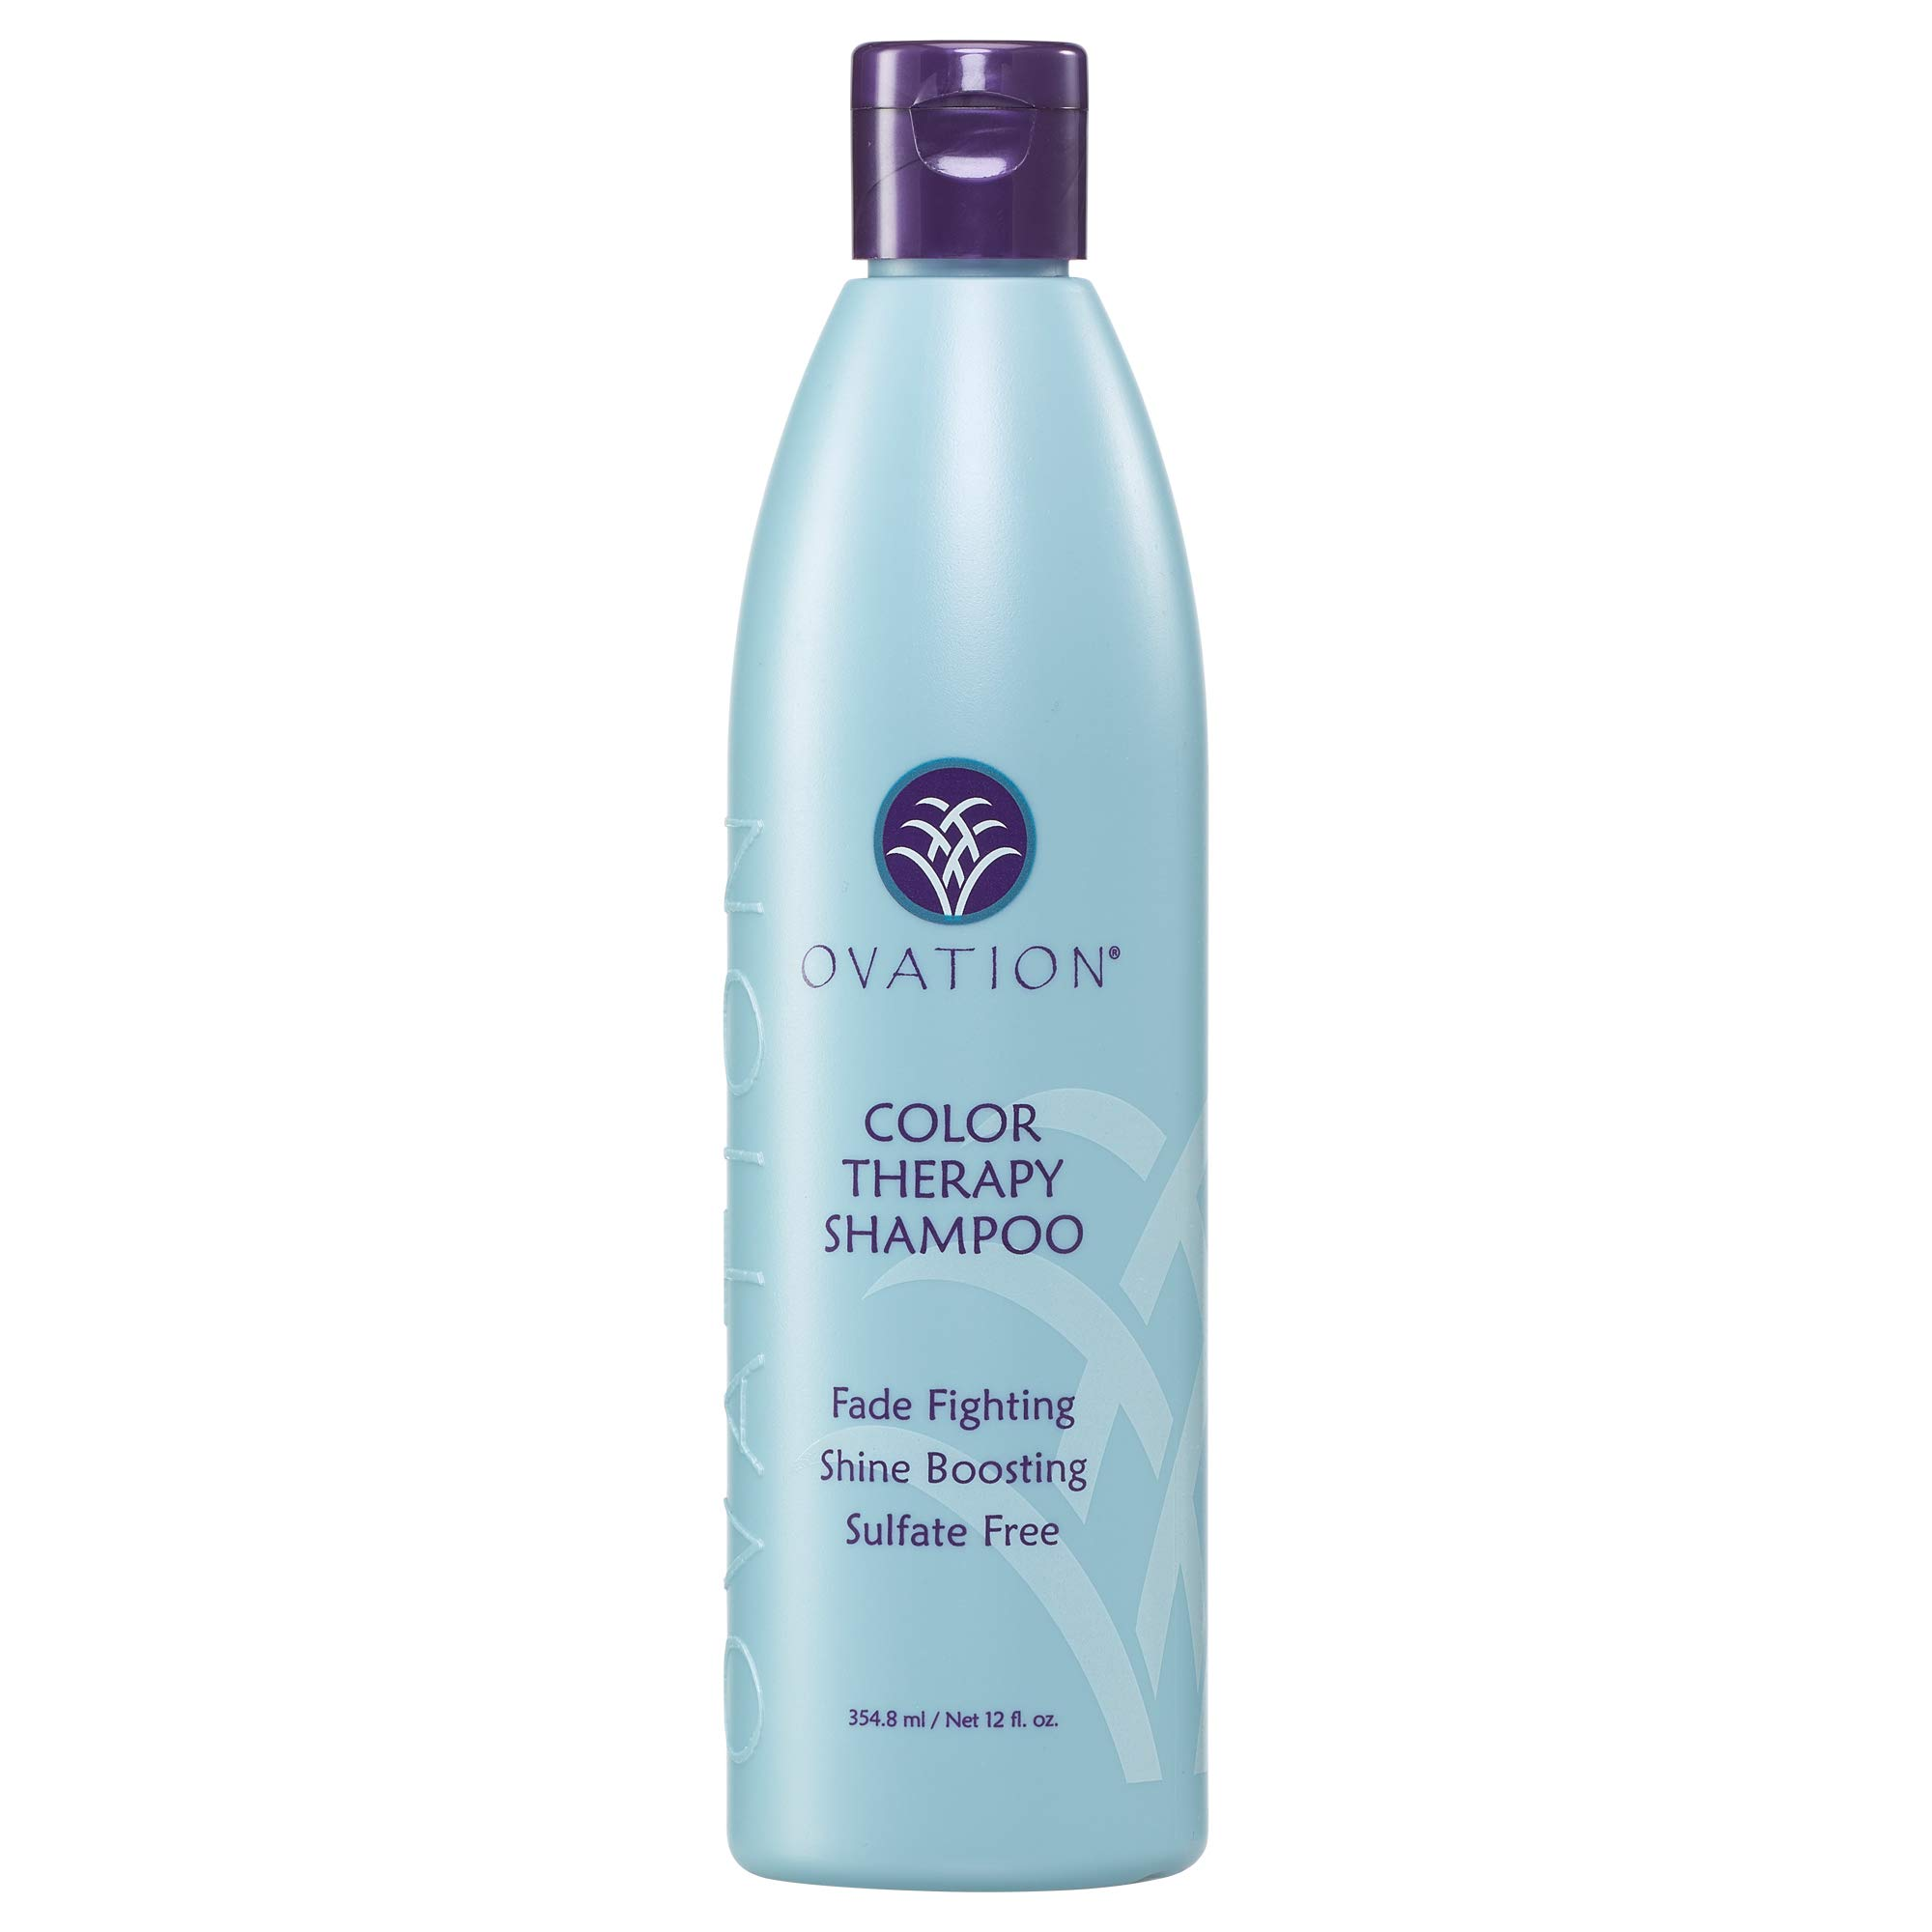 Ovation Color Therapy Shampoo - Sulfate Free Shampoo with Natural Ingredients including Keratin, Argon Oil to Gently Cleanse Hair while Protecting Color and Shine - Made in the USA